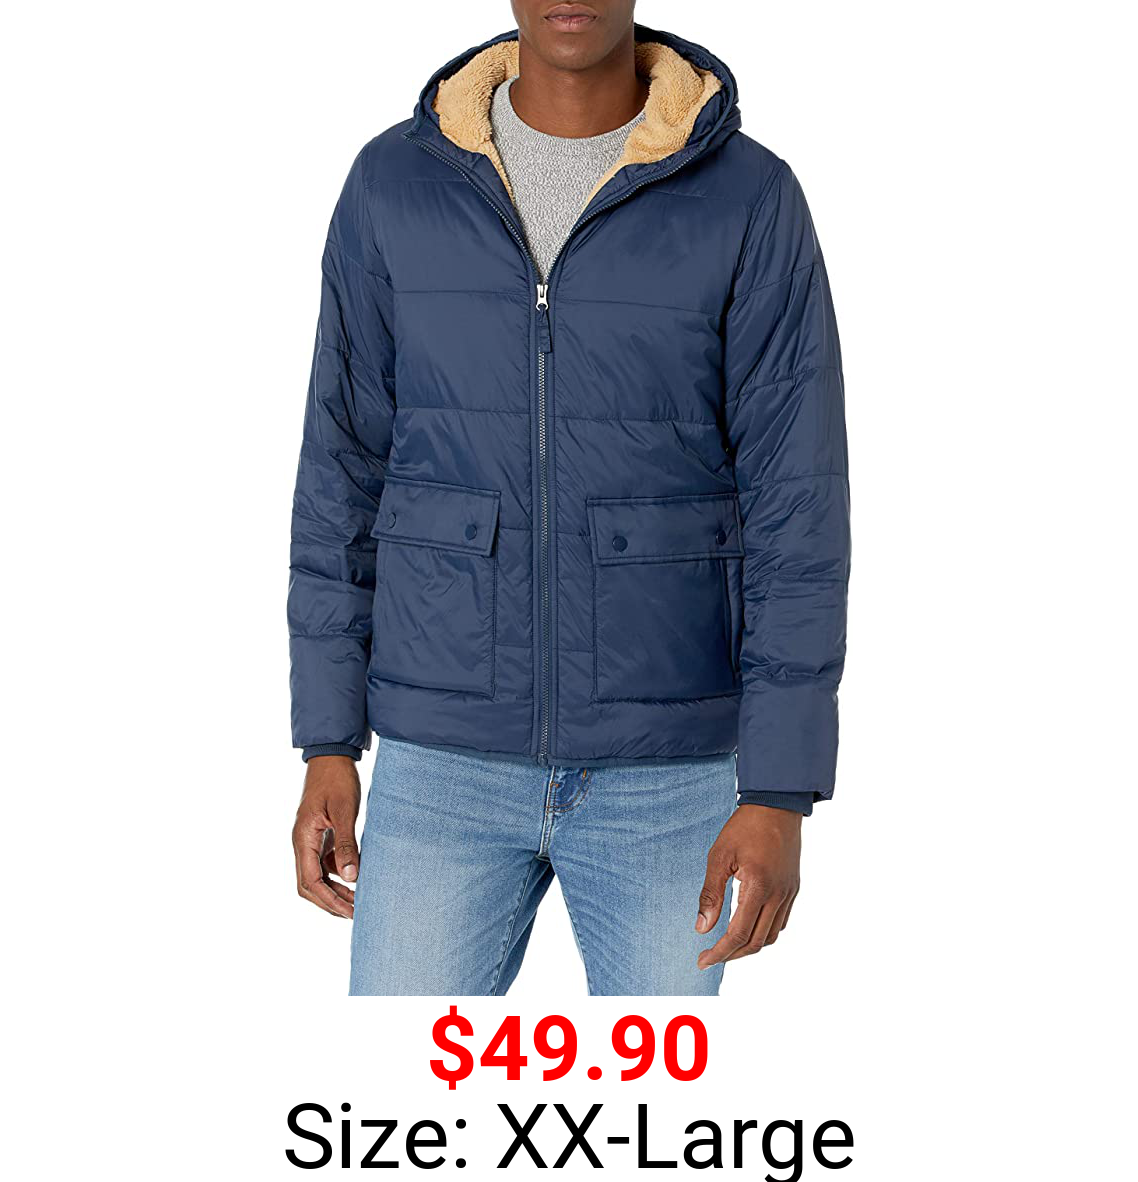 Amazon Essentials Men's Long-Sleeve Water-Resistant Sherpa-Lined Puffer Jacket